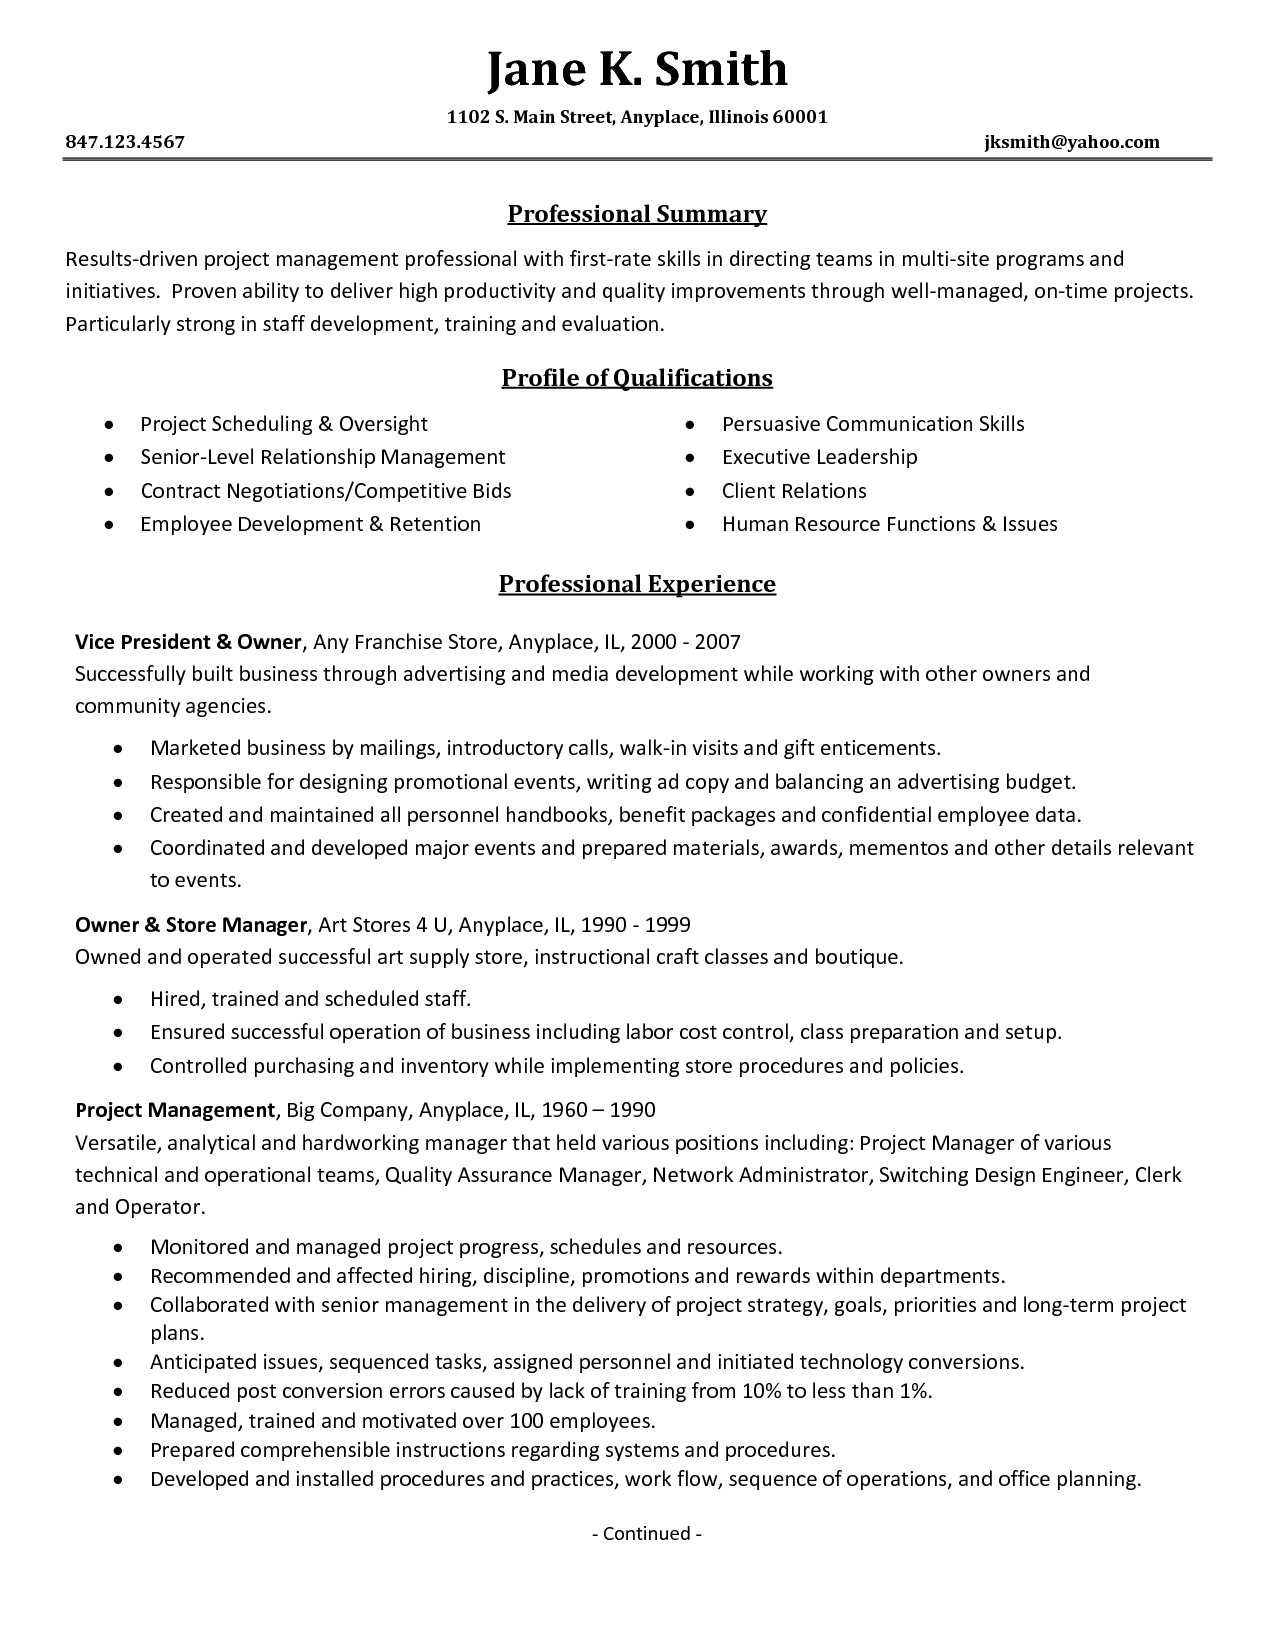 Leadership Skills Resume Leadership Skills Resume Template Job